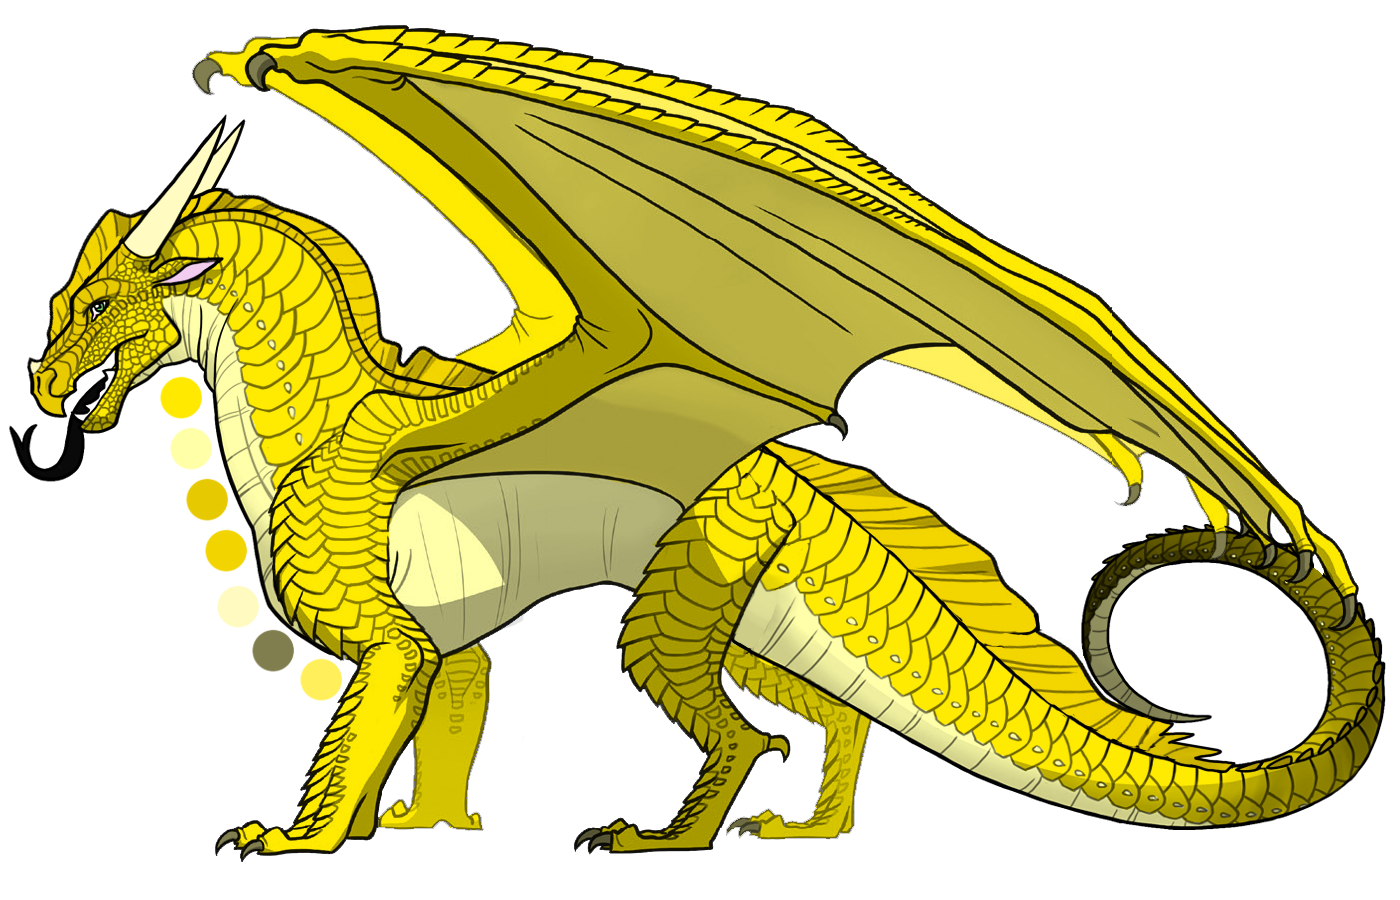 Sunny Is A Female Sandwing Nightwing Hybrid With Tawny Gold Scales Golden Wings And Mossy Gray Green Eyes Wings Of Fire Dragons Wings Of Fire Dragon Wings